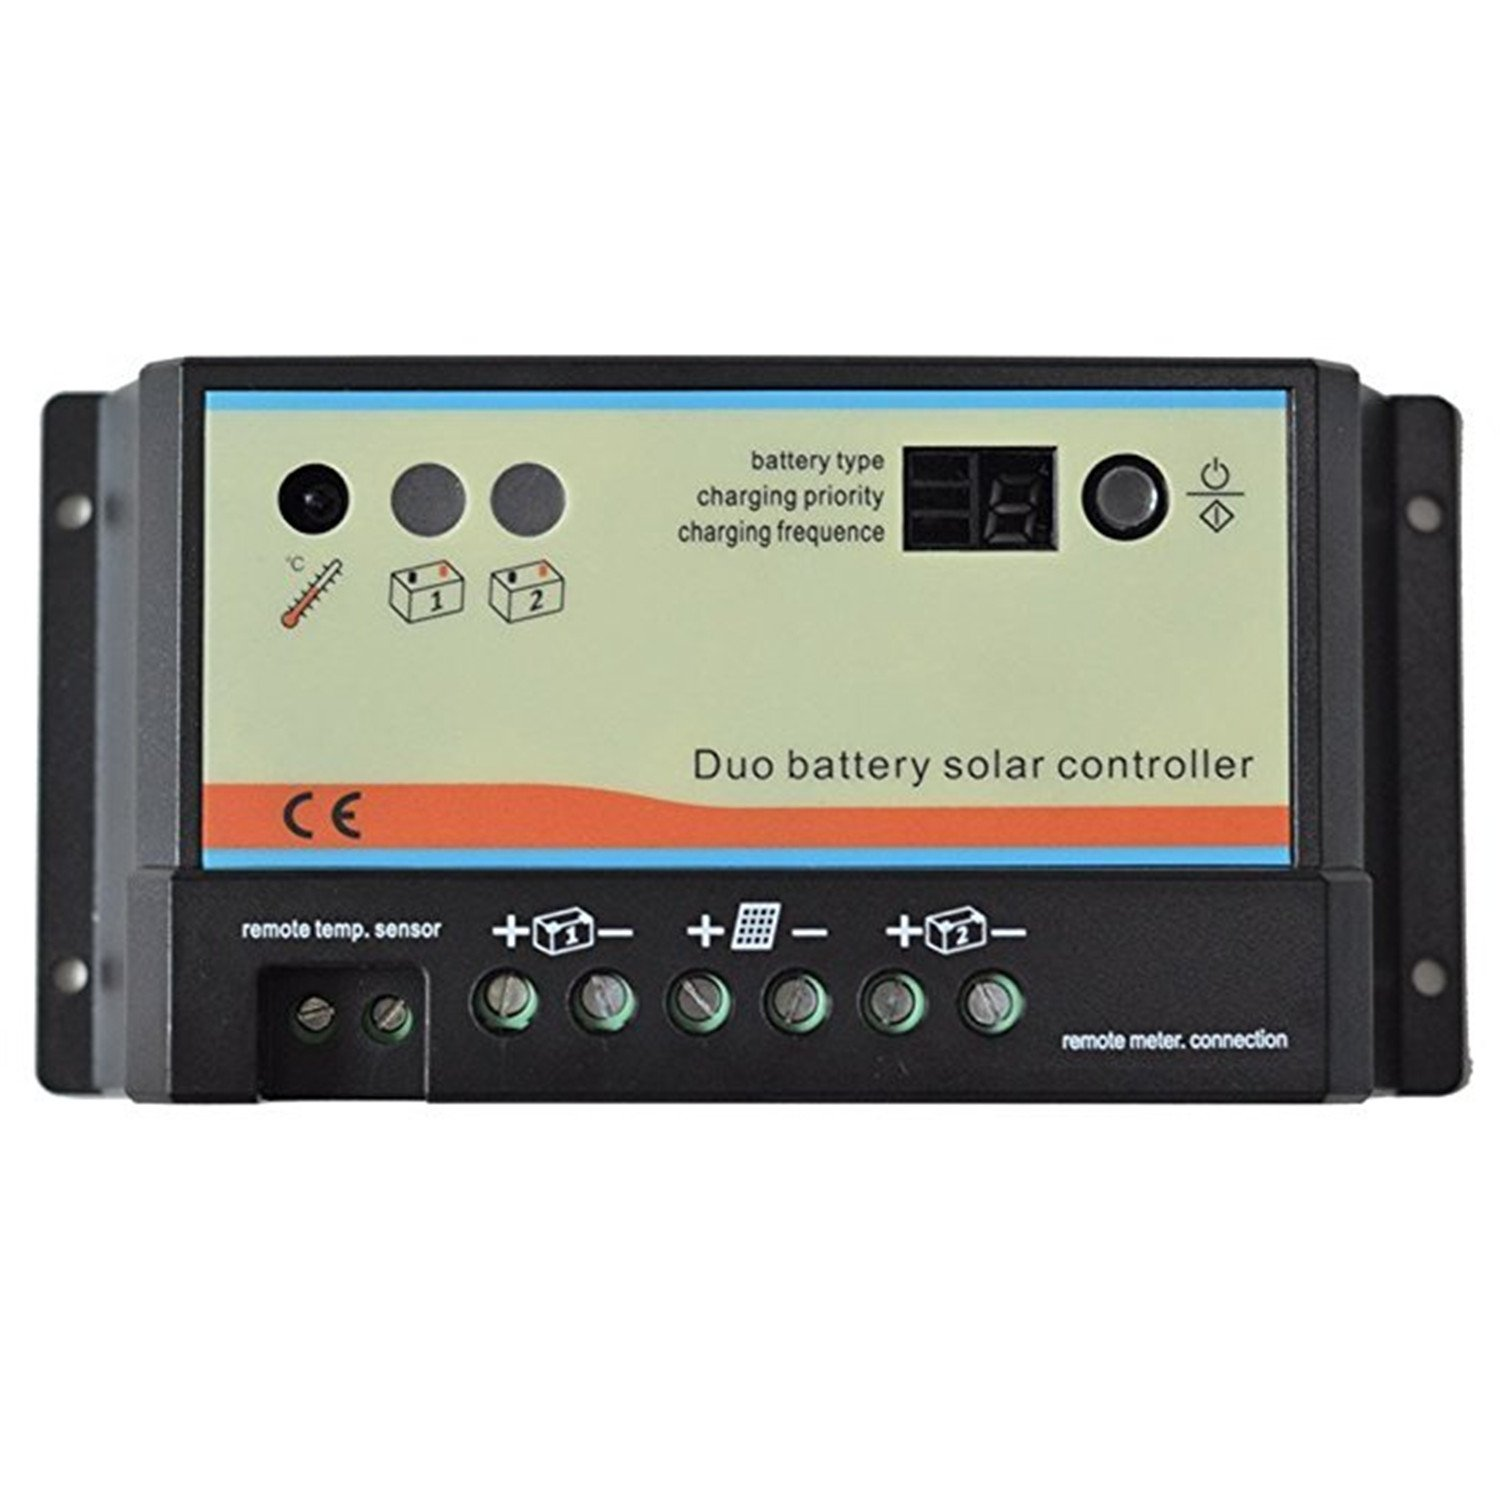 EPsolar Dual Battery Solar Charge Controller 10A 12V/24V Auto Work for RVs Caravans and Boats etc Duo Battery Solar Charging System(10A) by EPsolar